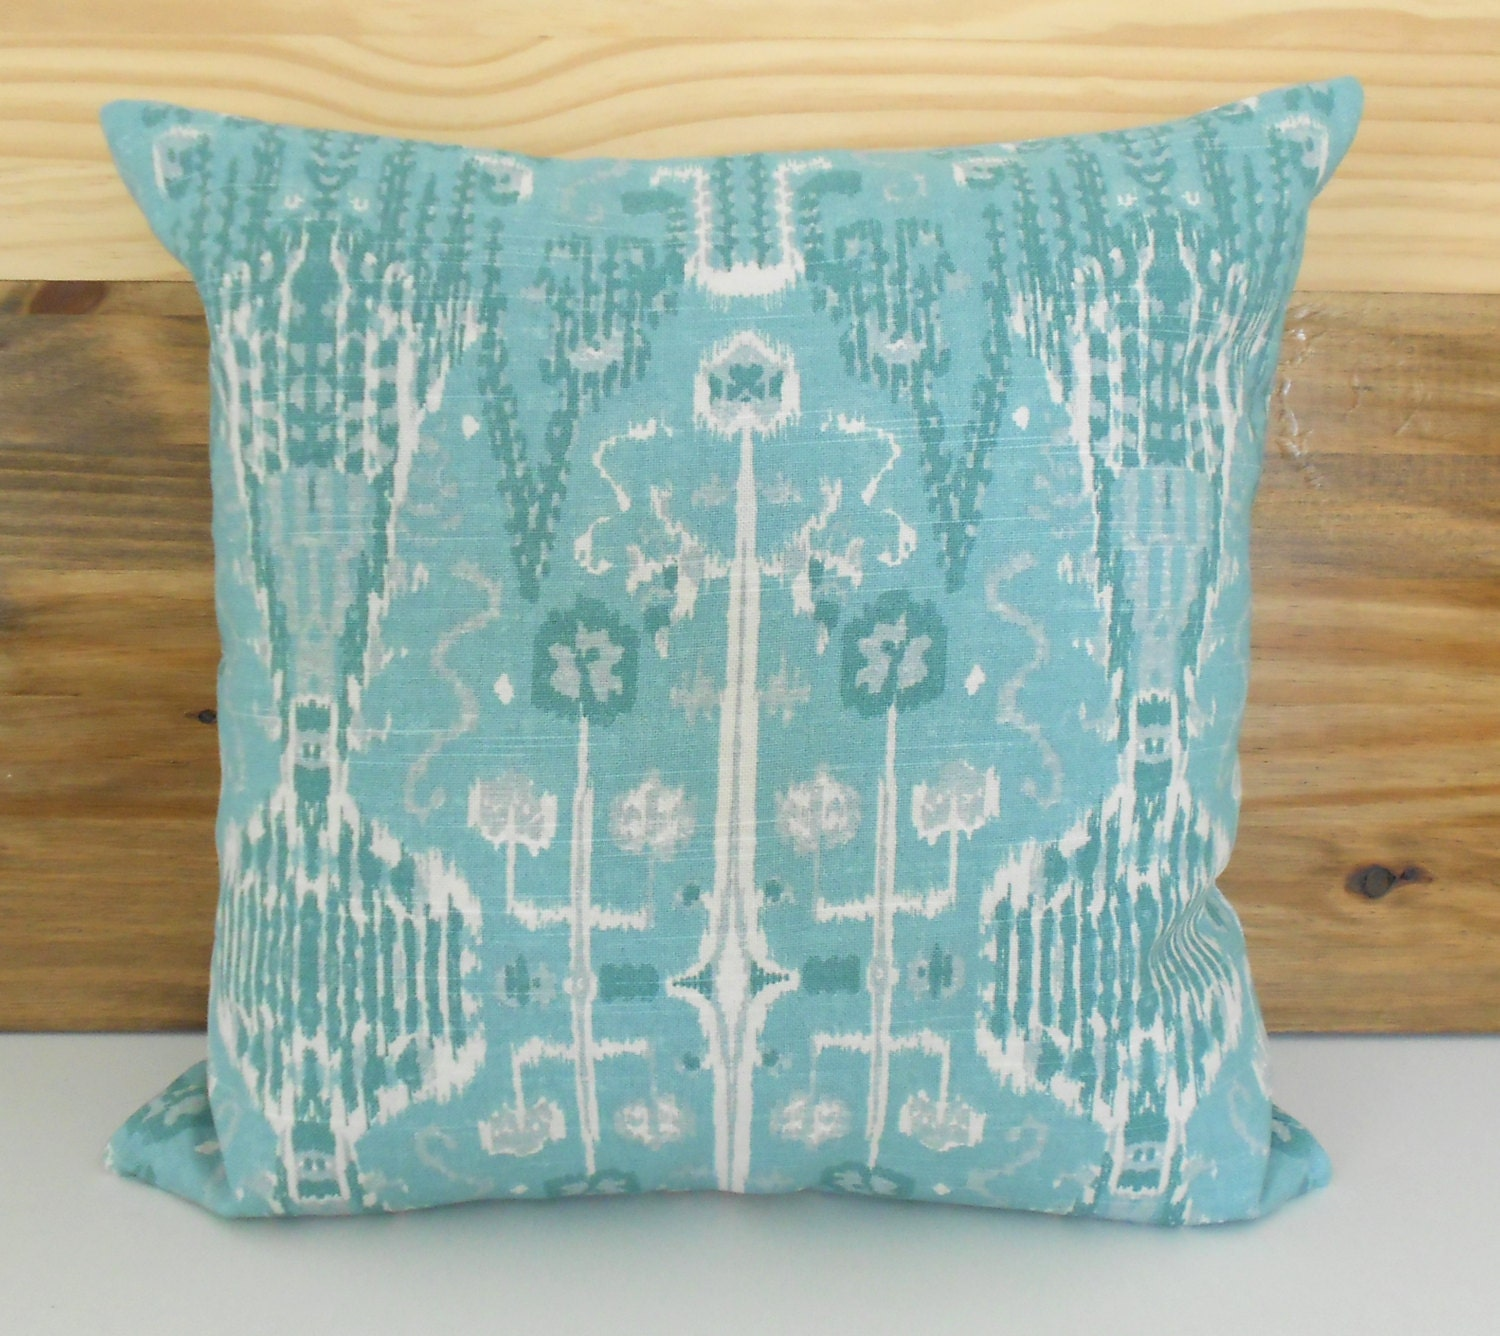 Teal seafoam ikat decorative pillow cover